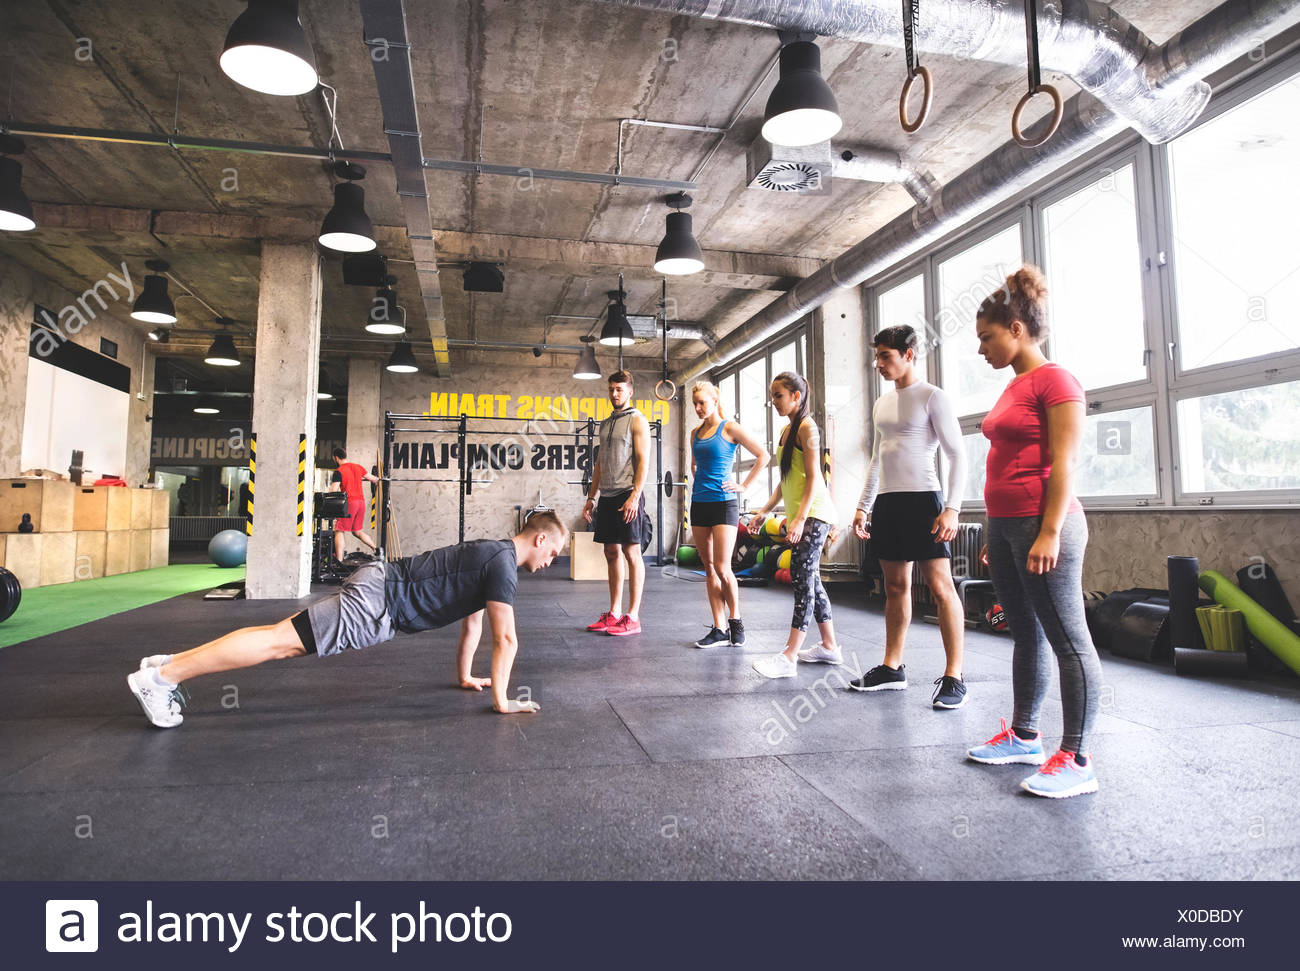 Group of young people watching young man doing push-ups in gym - Stock Image